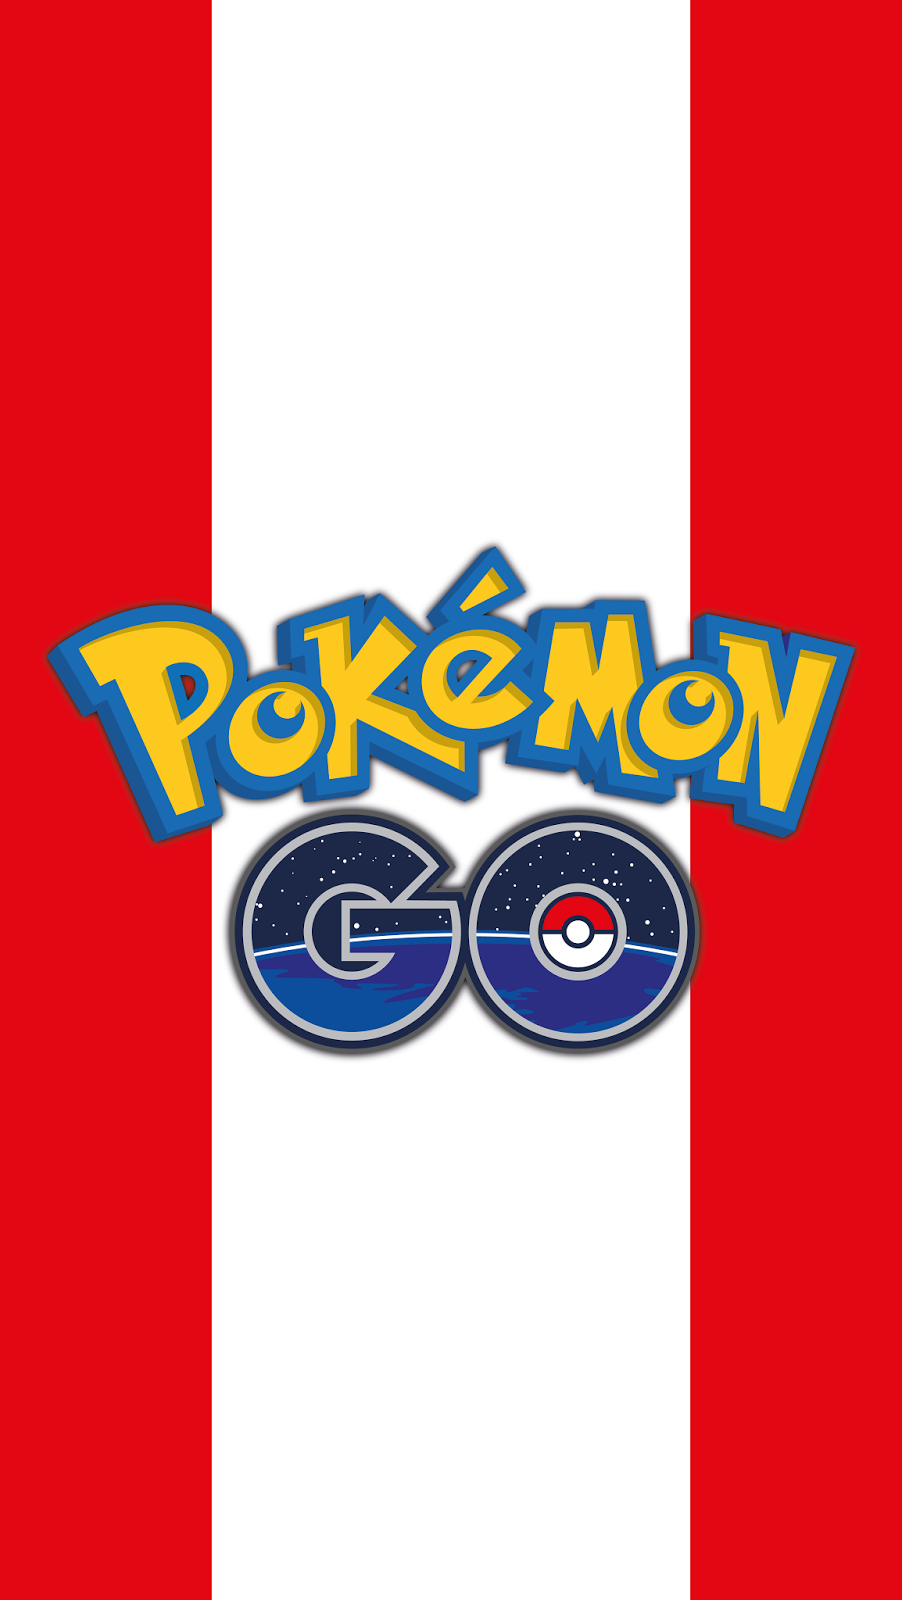 pokemon go wallpaper flag canada for android phone and